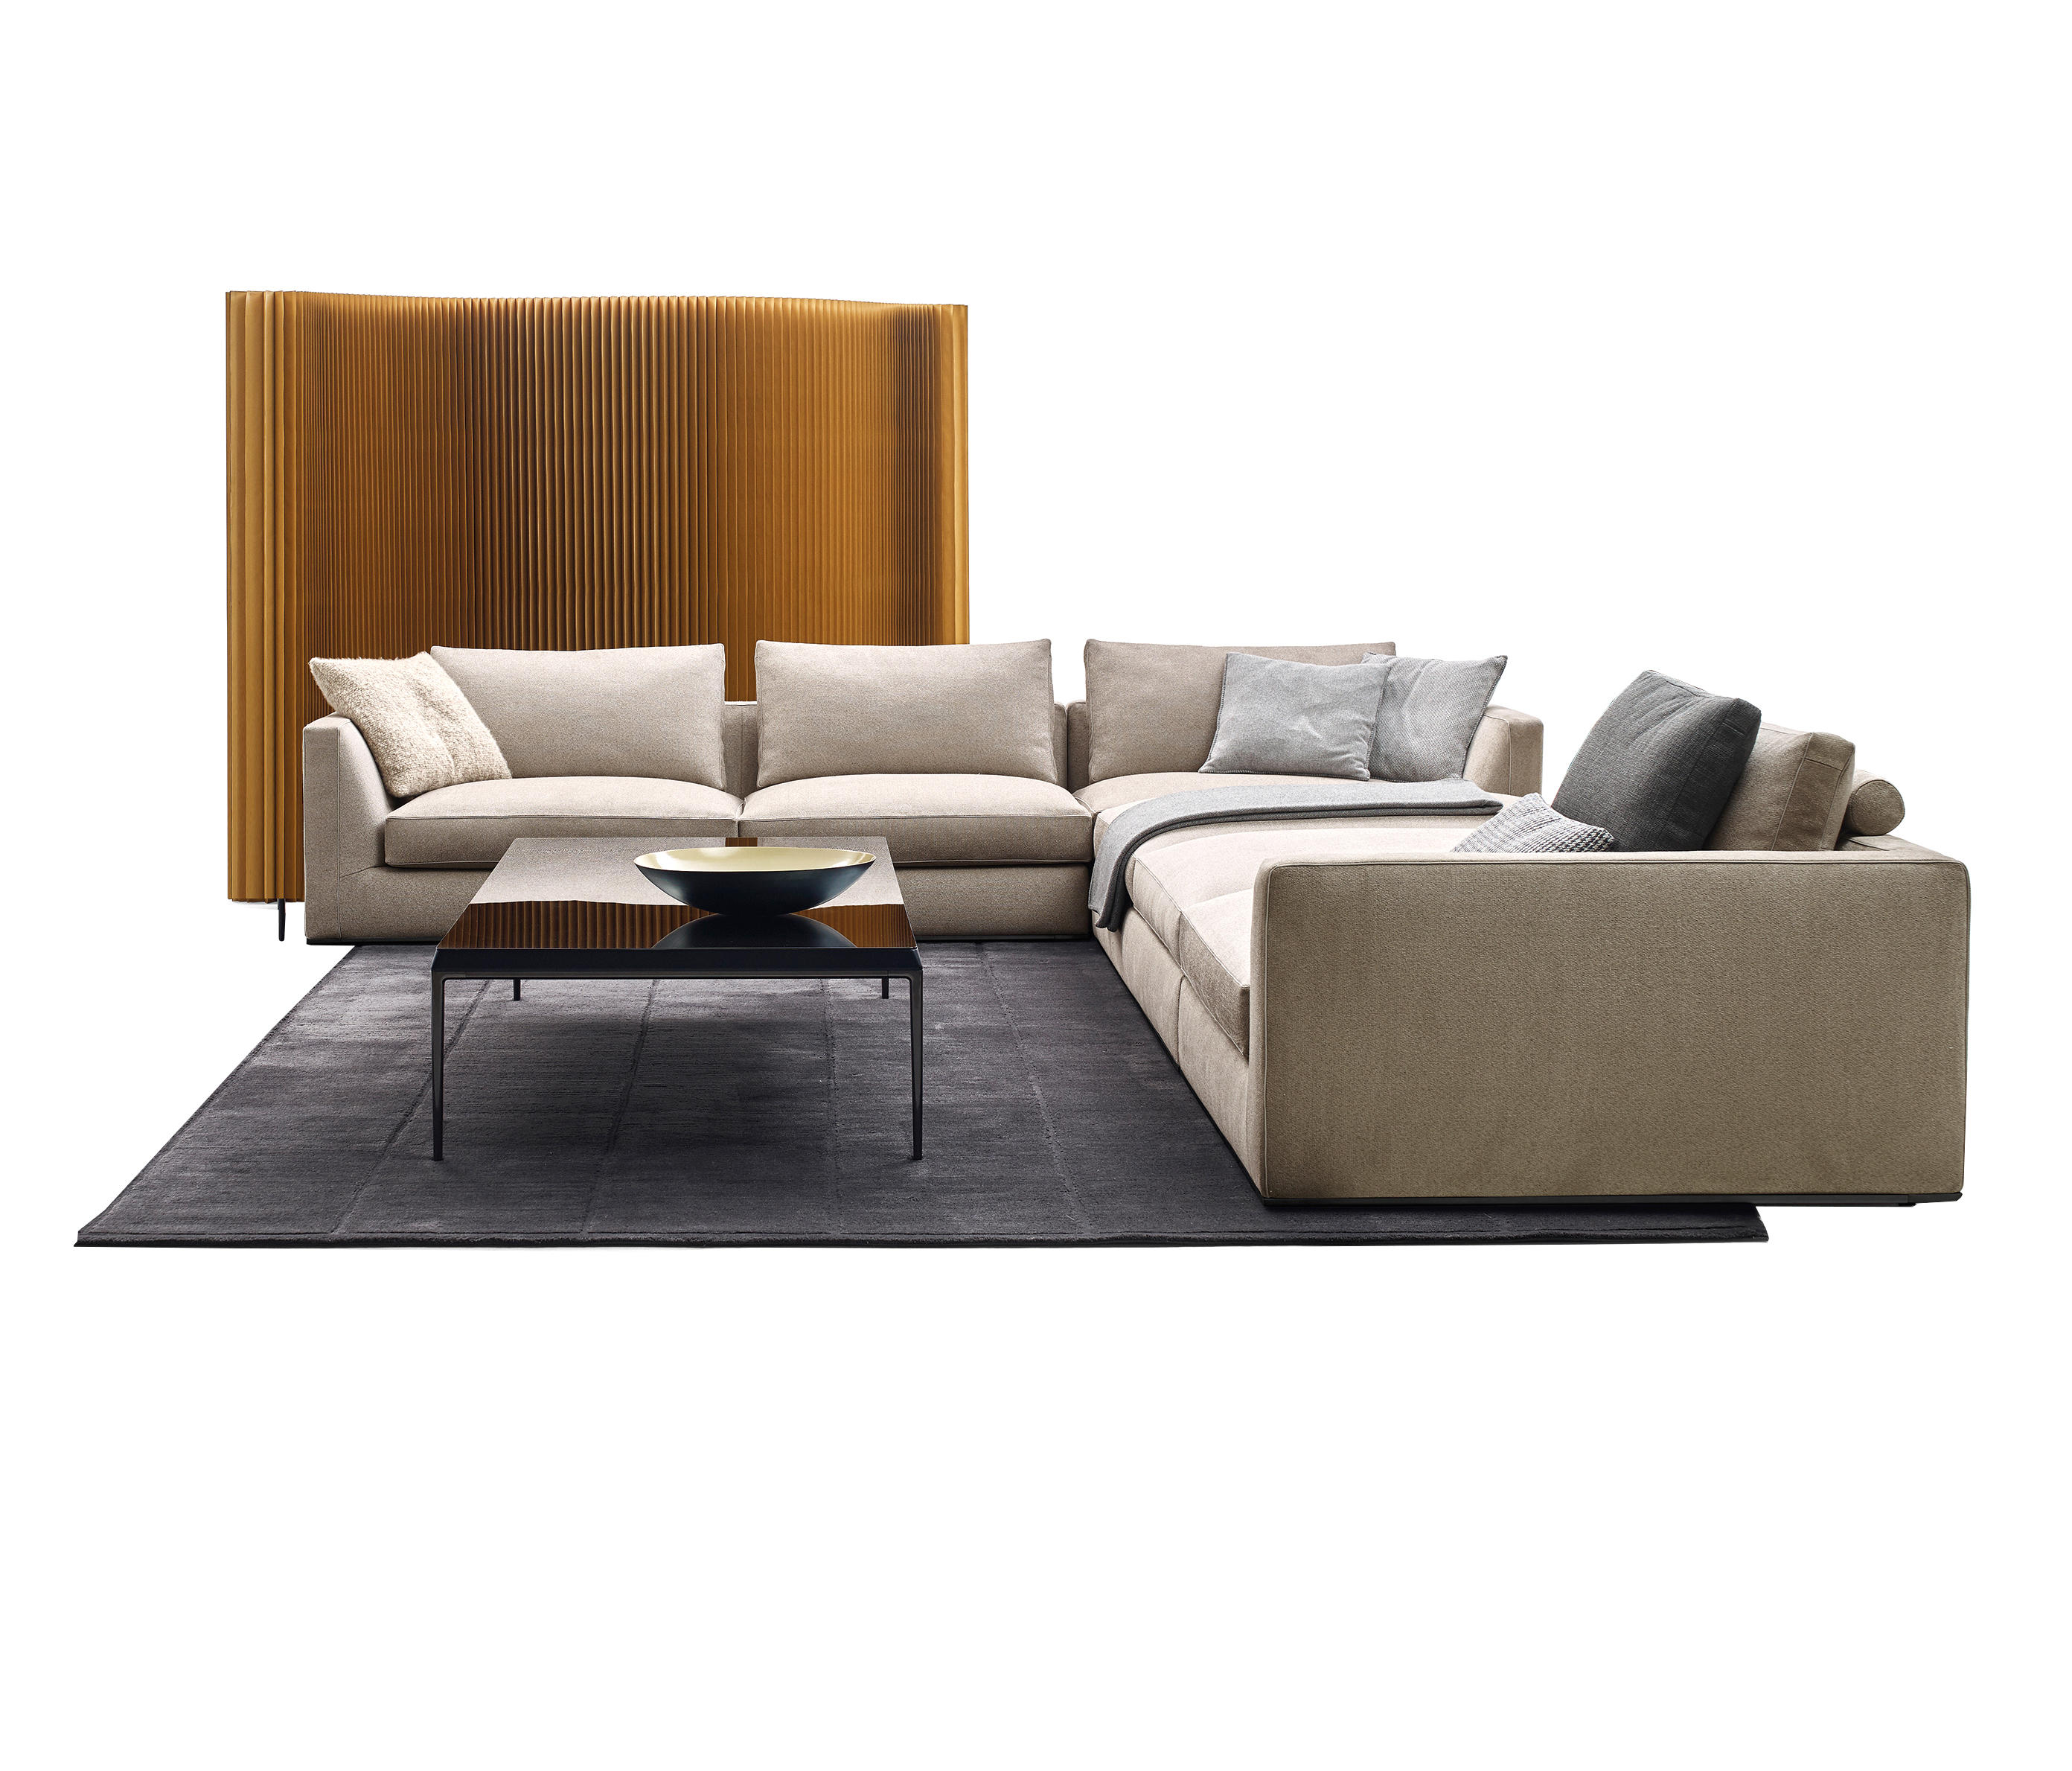 Richard sofa sofas from b b italia architonic for B b italia novedrate